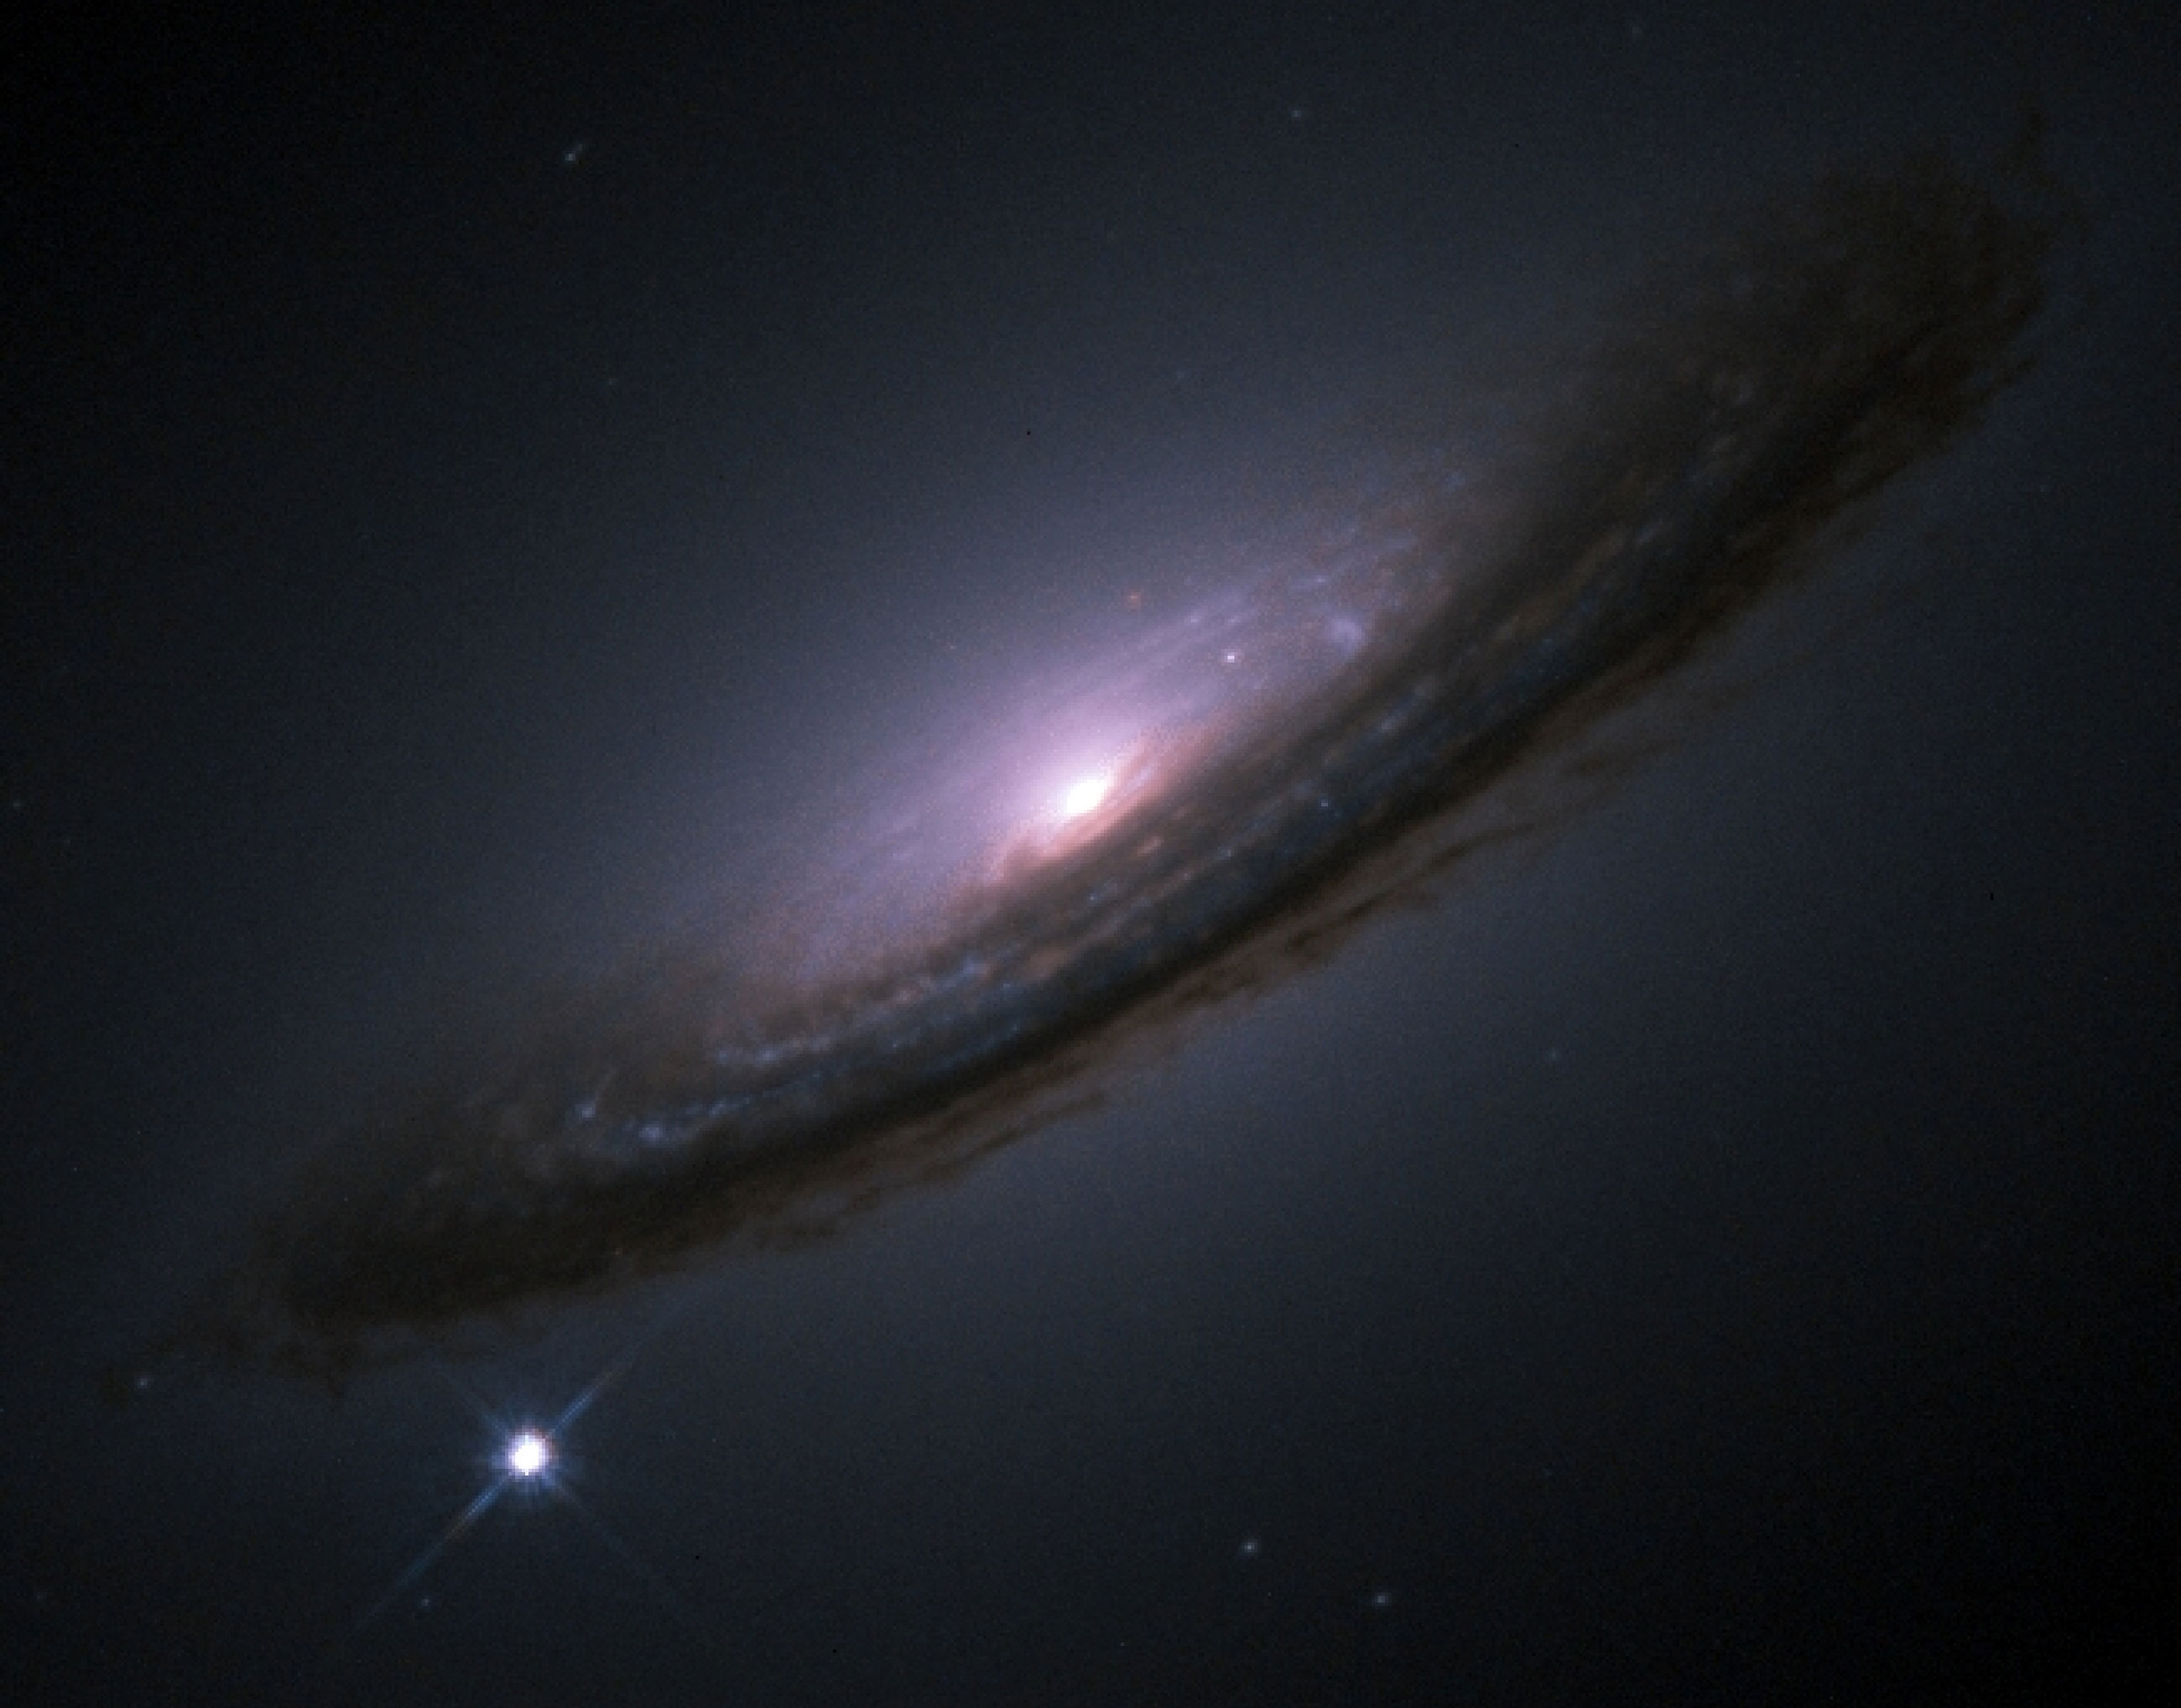 The Type Ia supernova 1994D glows in the lower left of this Hubble Space Telescope image of the spiral galaxy NGC 4526.